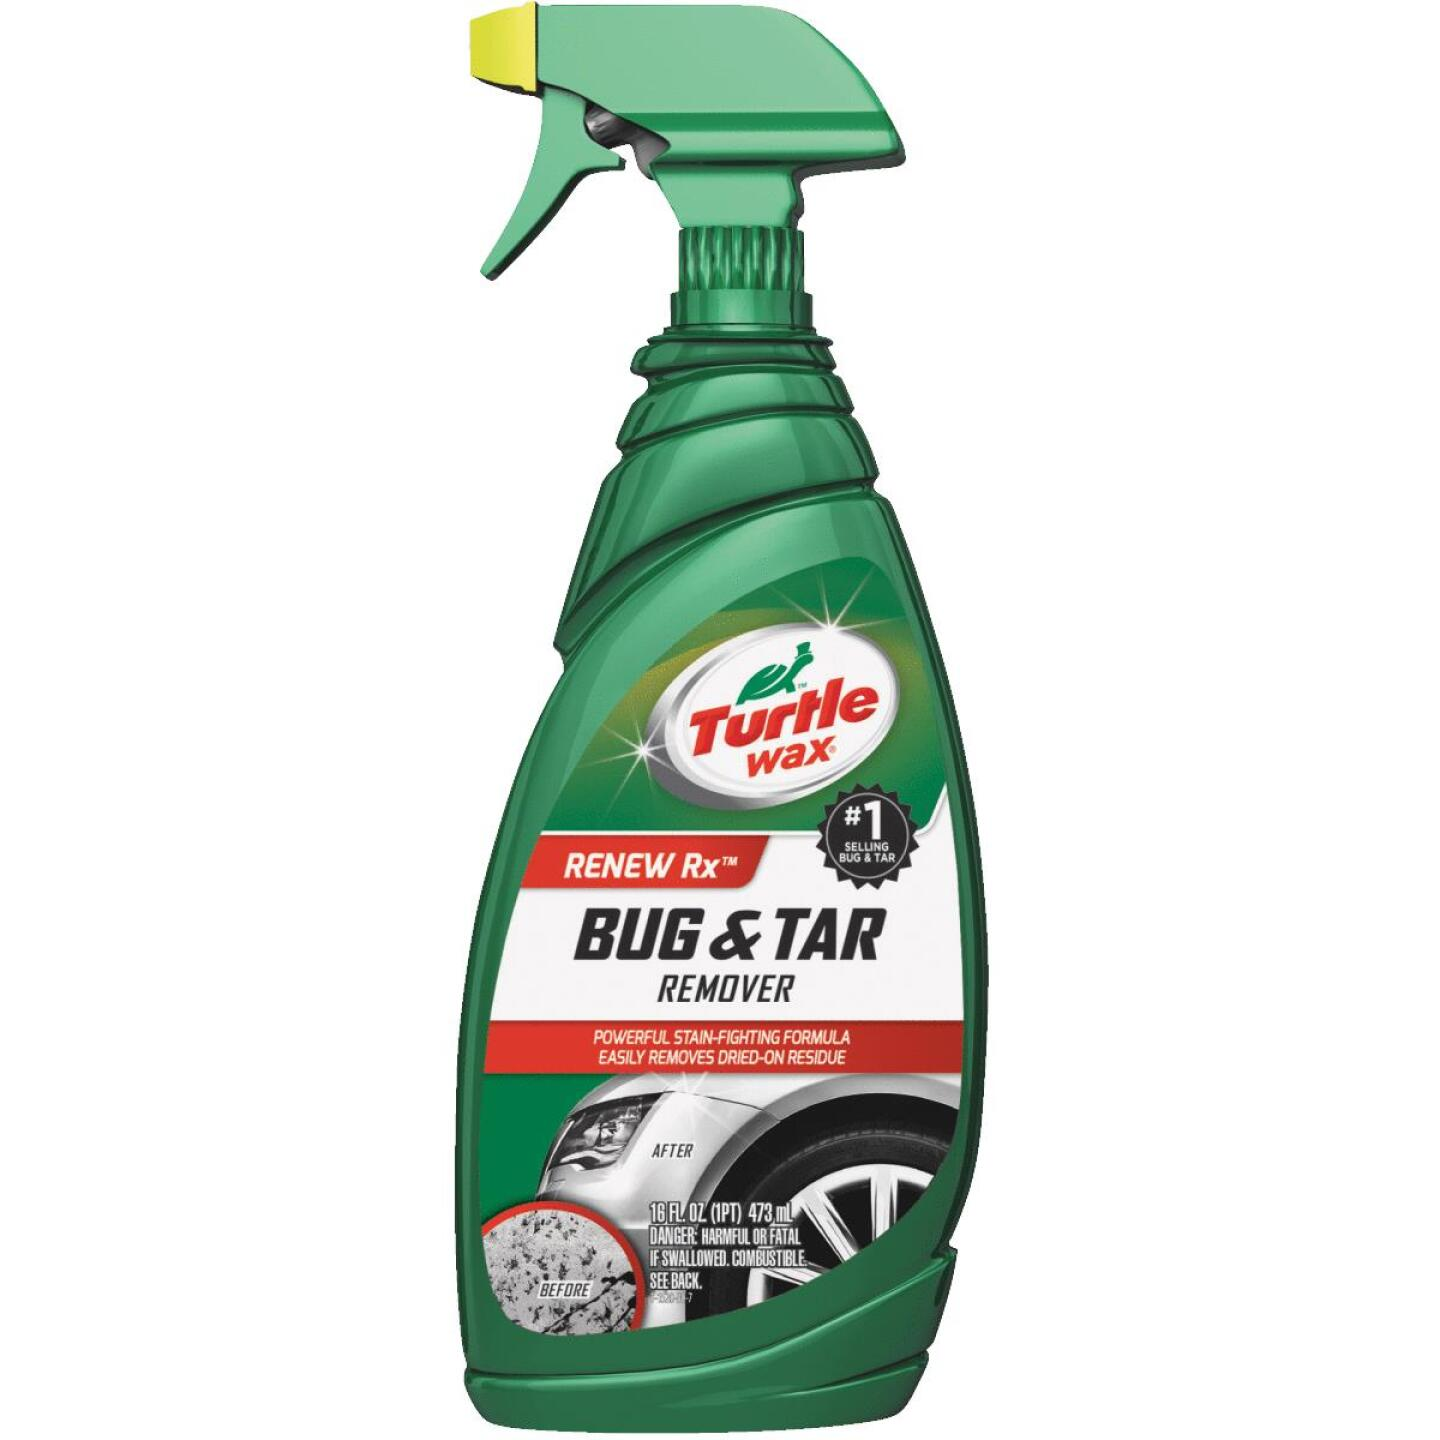 Turtle Wax RENEW Rx Bug and Tar Remover 16 Oz. Trigger Spray Bug Remover Image 1